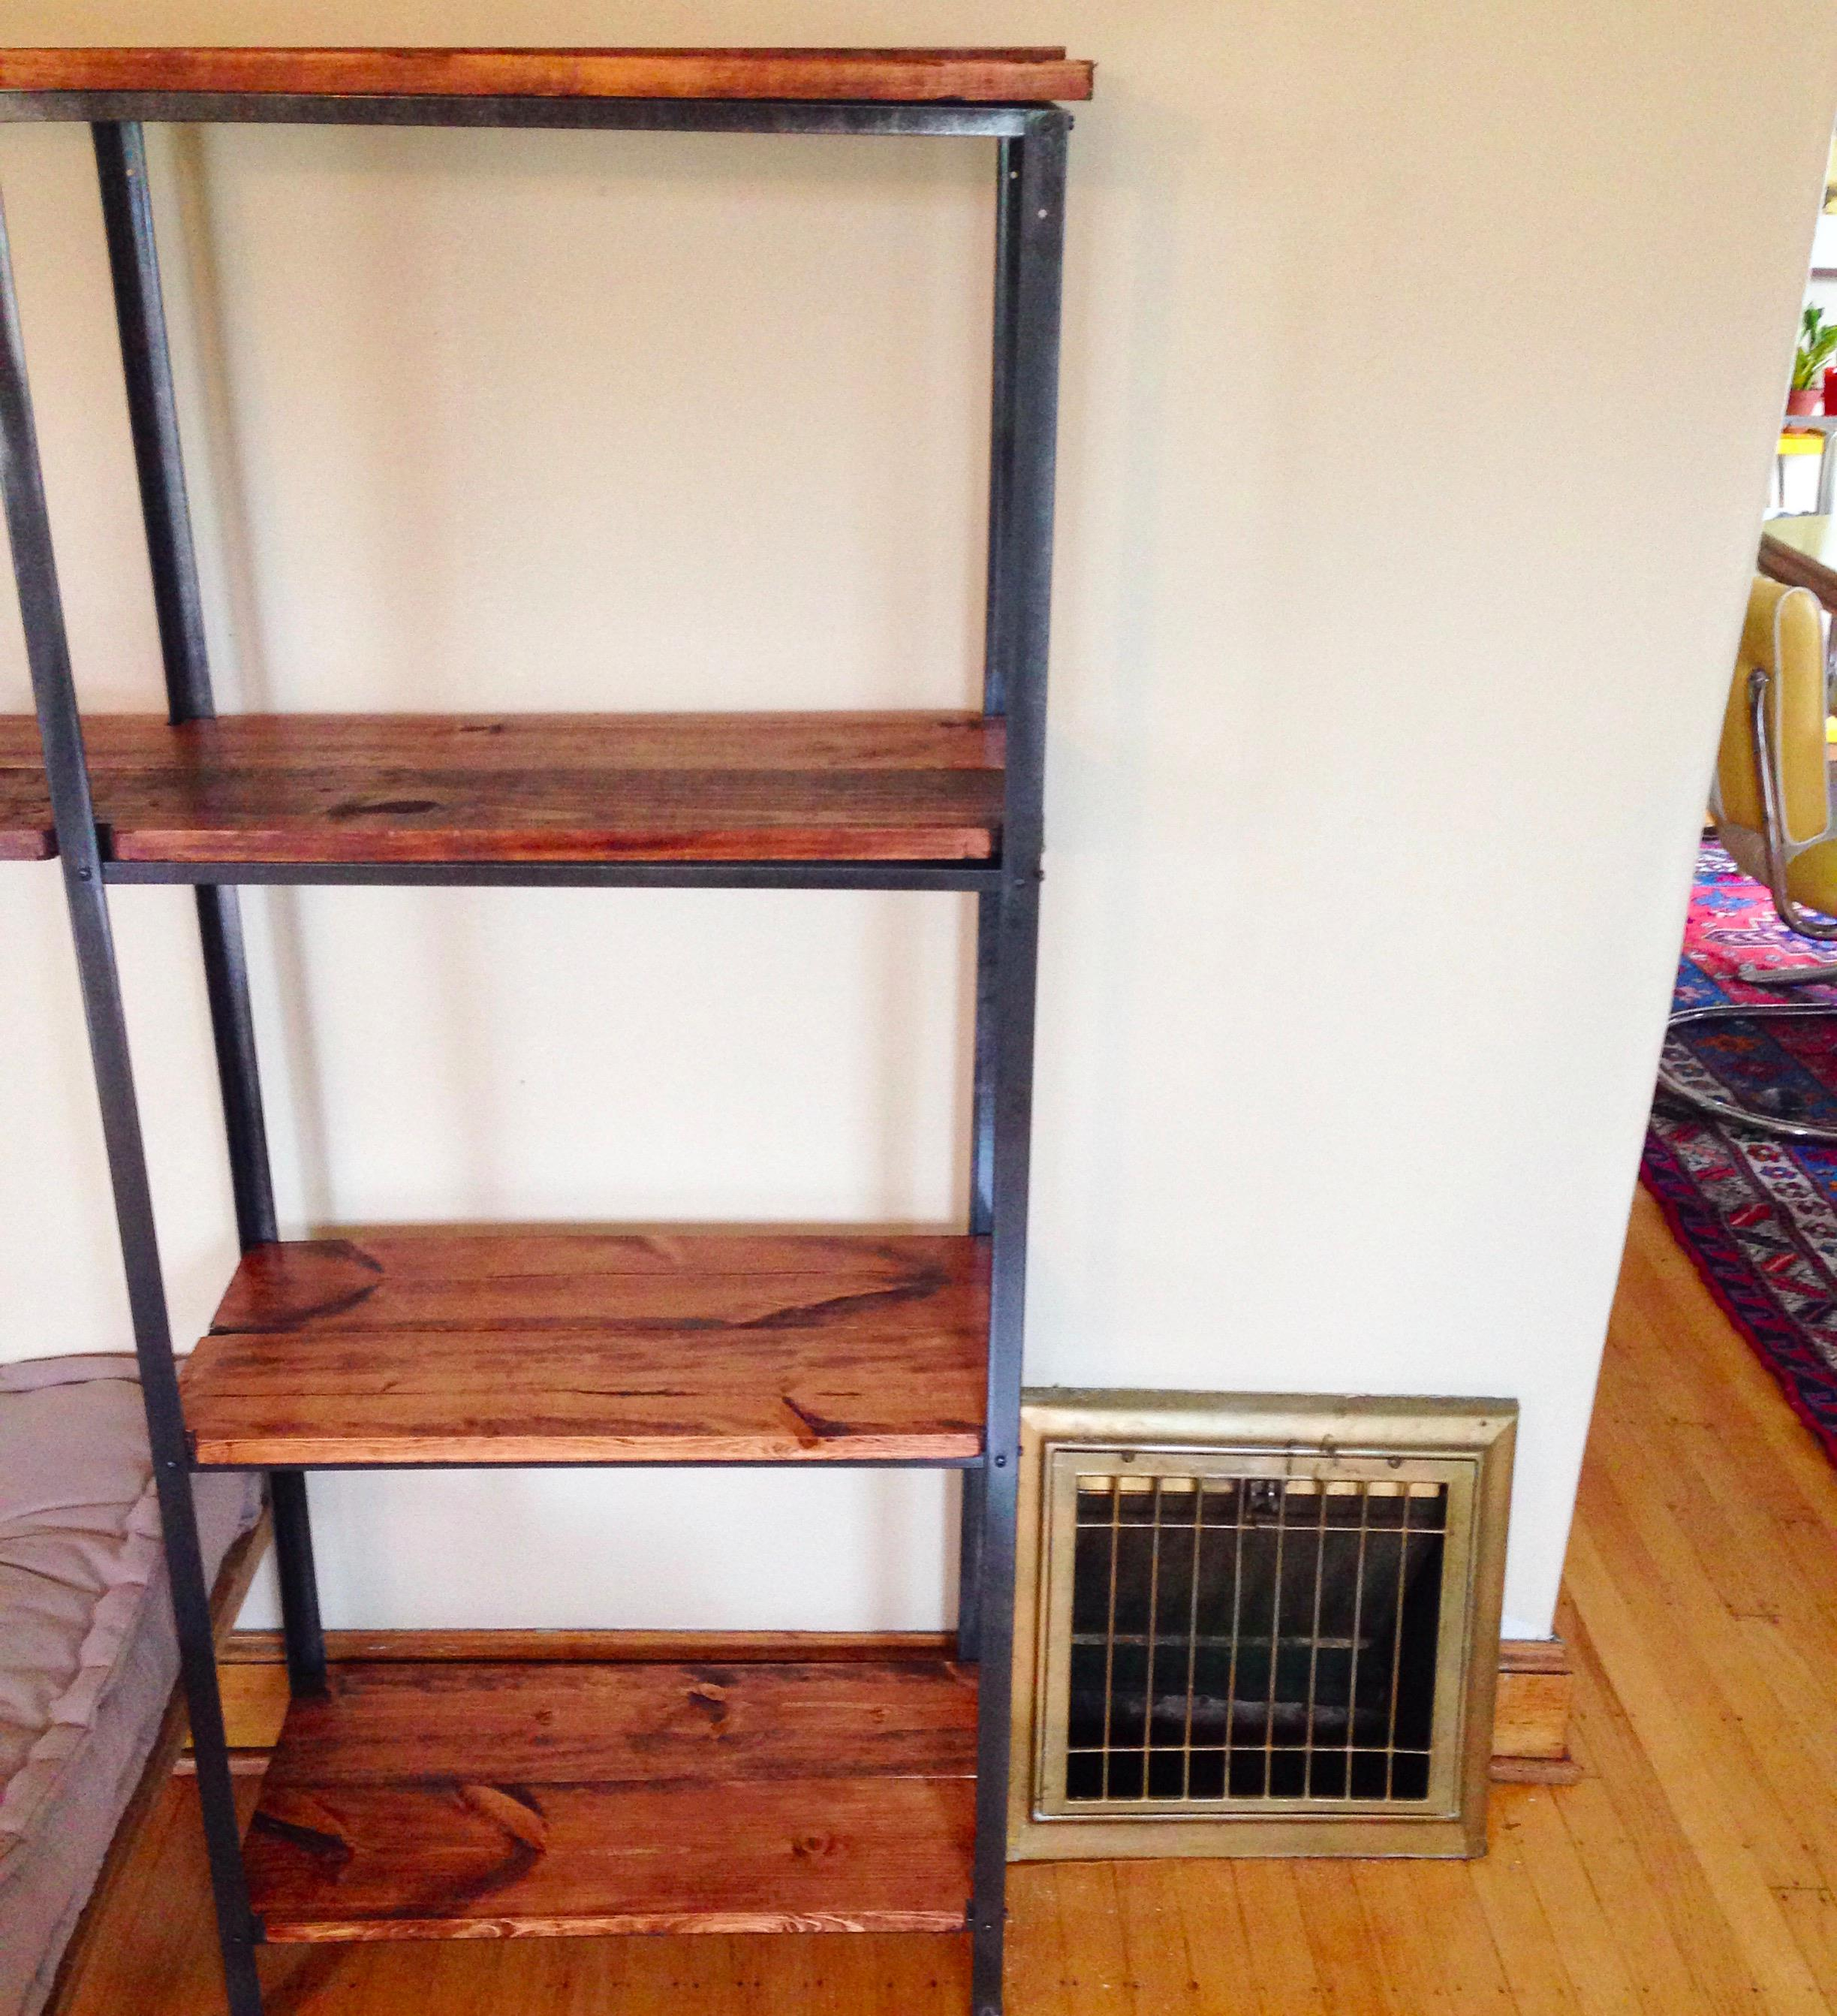 Ikea Hyllis Shelves – Misadventures In Upcycling And